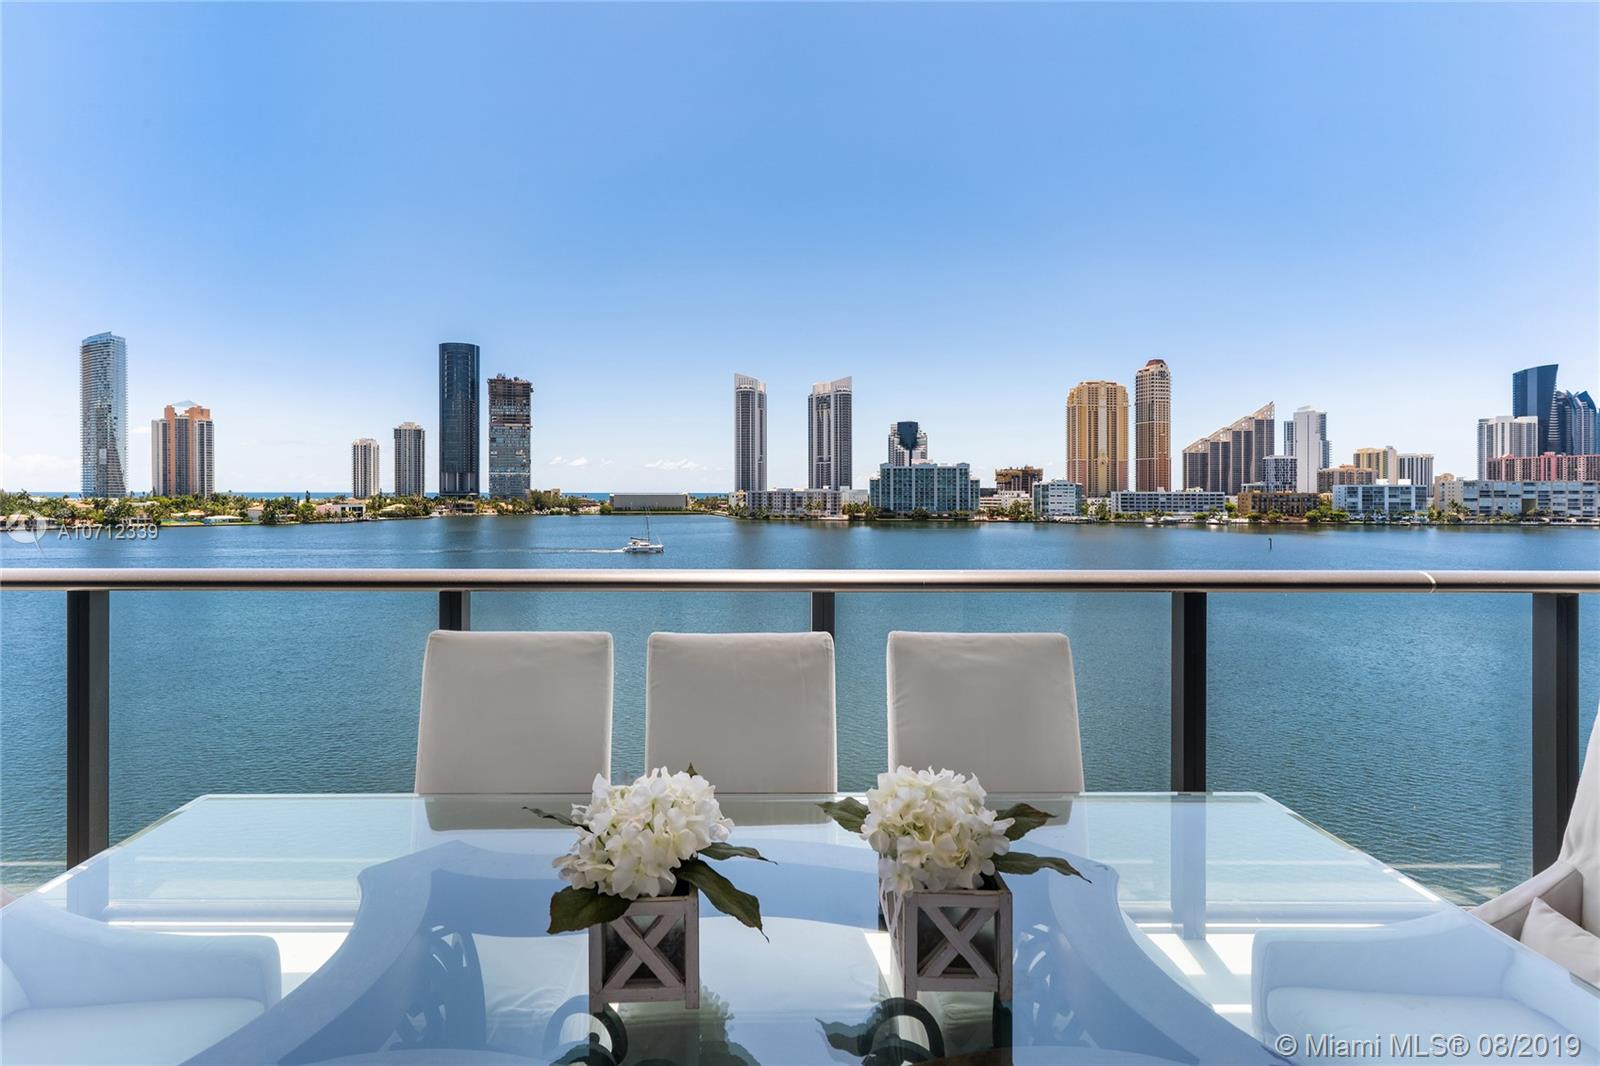 image #1 of property, Prive Condo, Unit 508